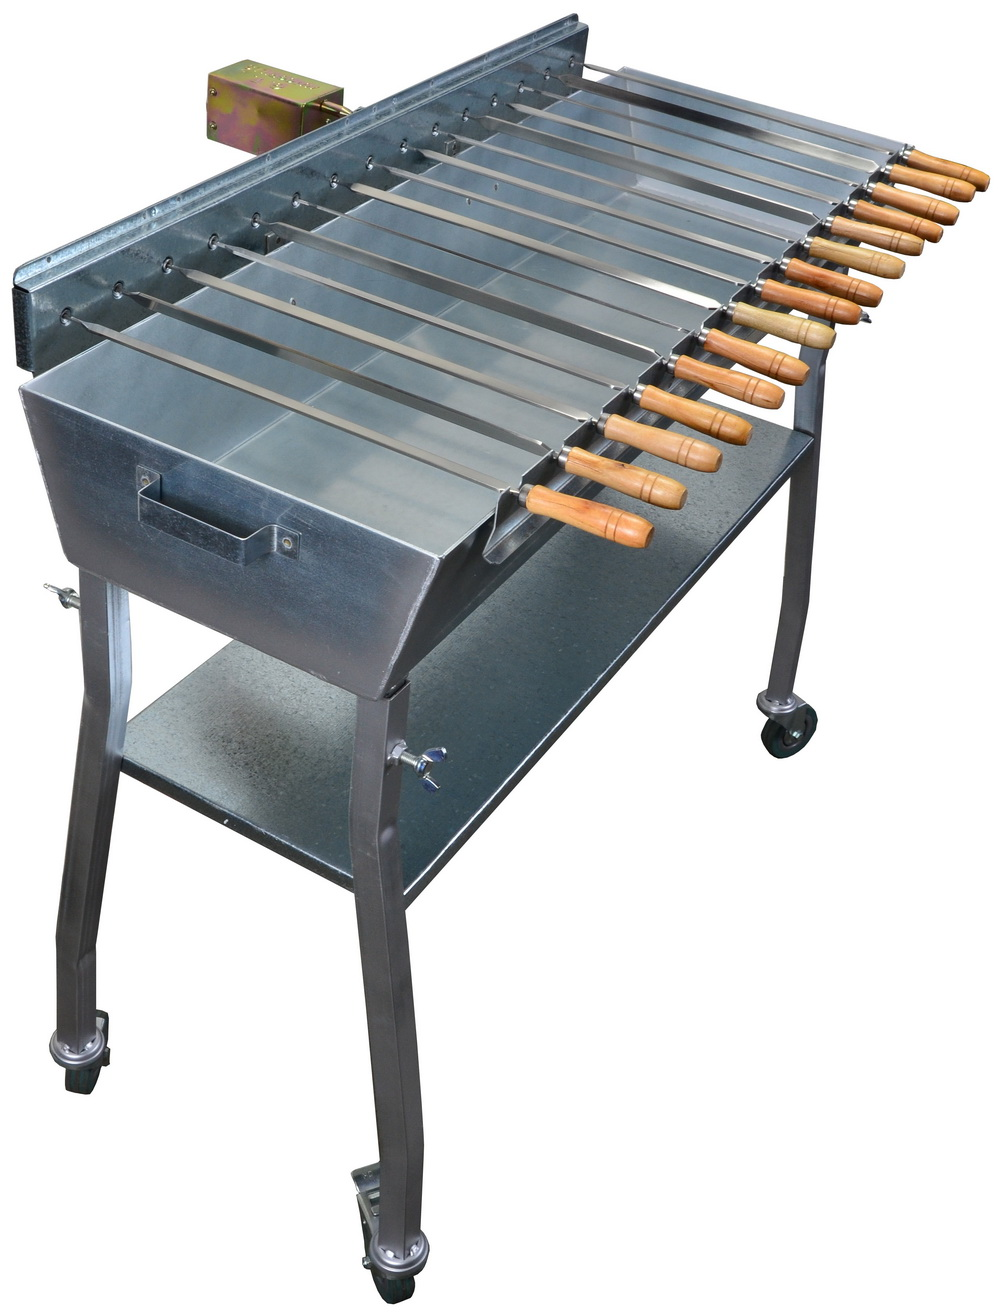 Mangal Rotisserie BBQ 90 - buy BBQ Grills online in Germany